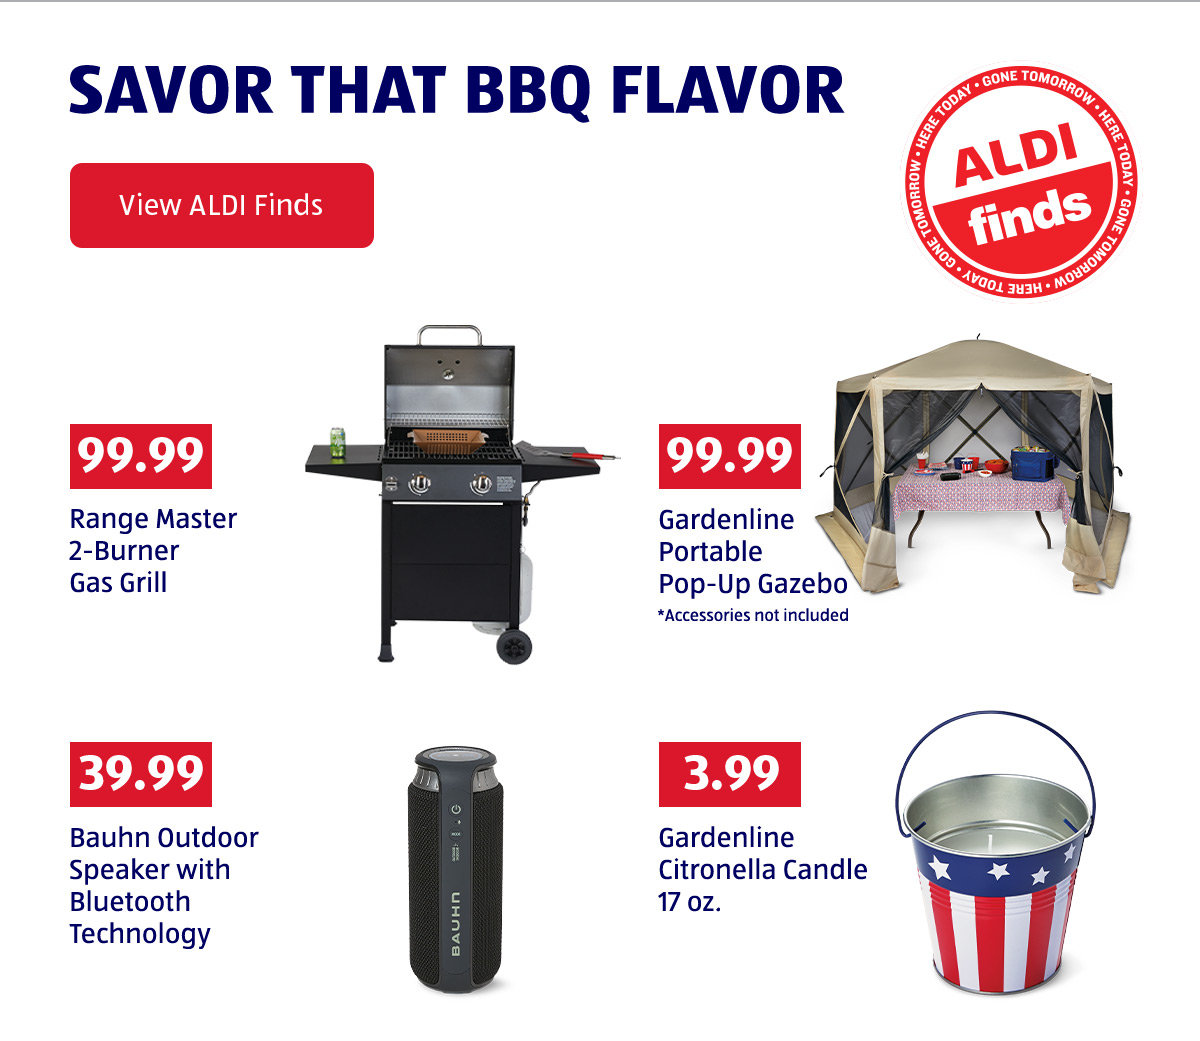 Savor That BBQ Flavor. ALDI Finds. View ALDI Finds.